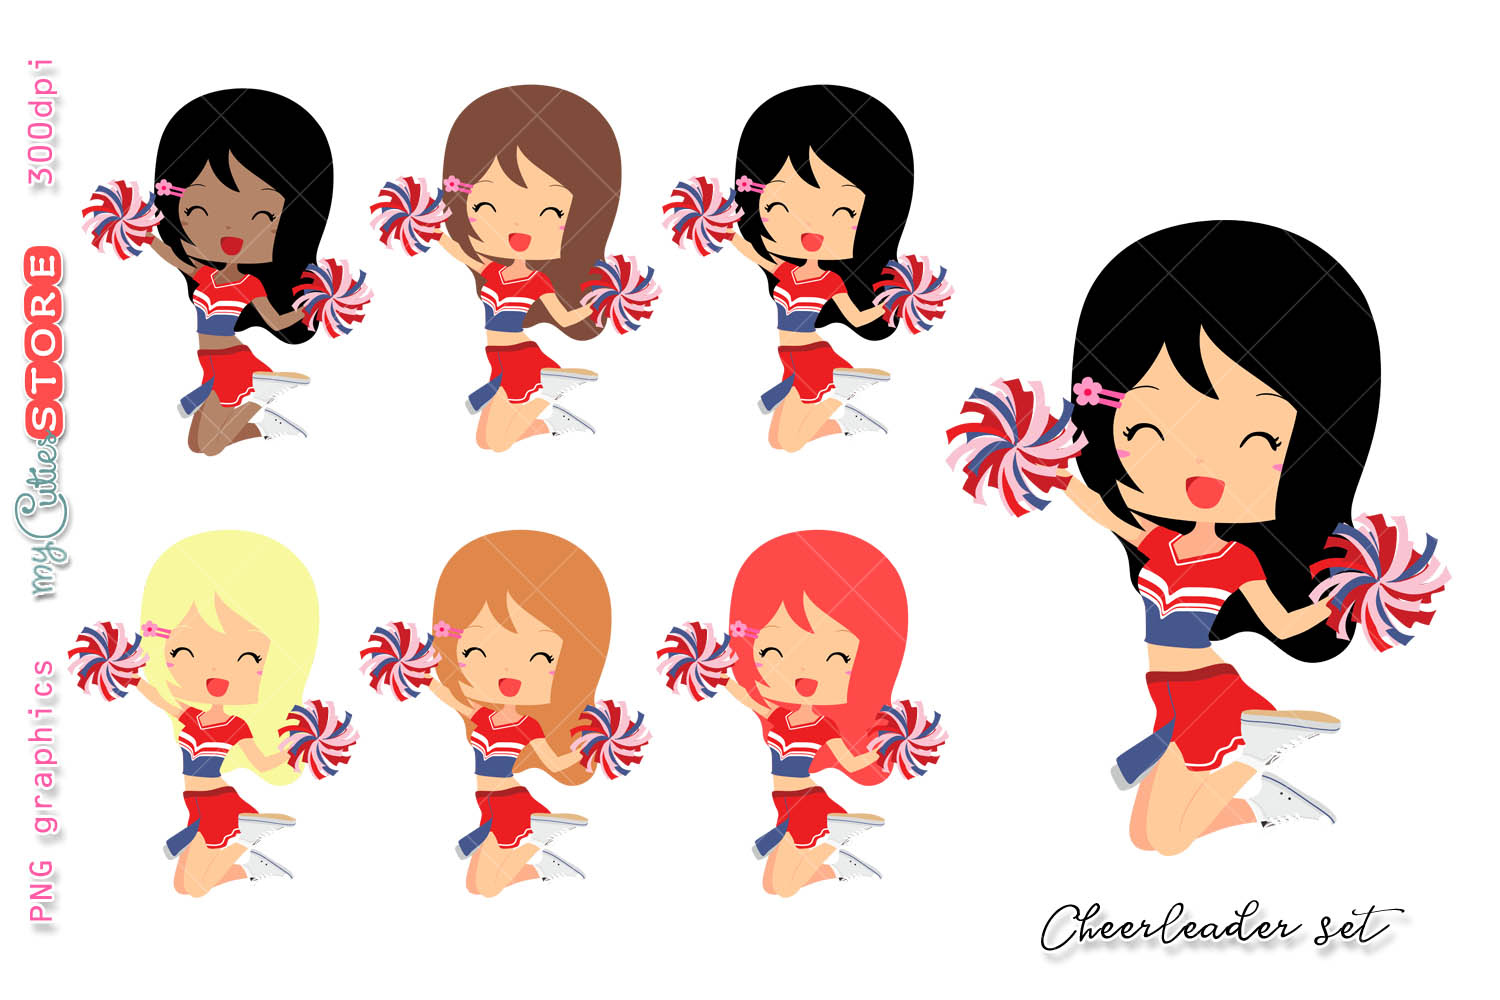 1500x1000 Cheerleader Girl Clipart, Cute Girls Cl Design Bundles